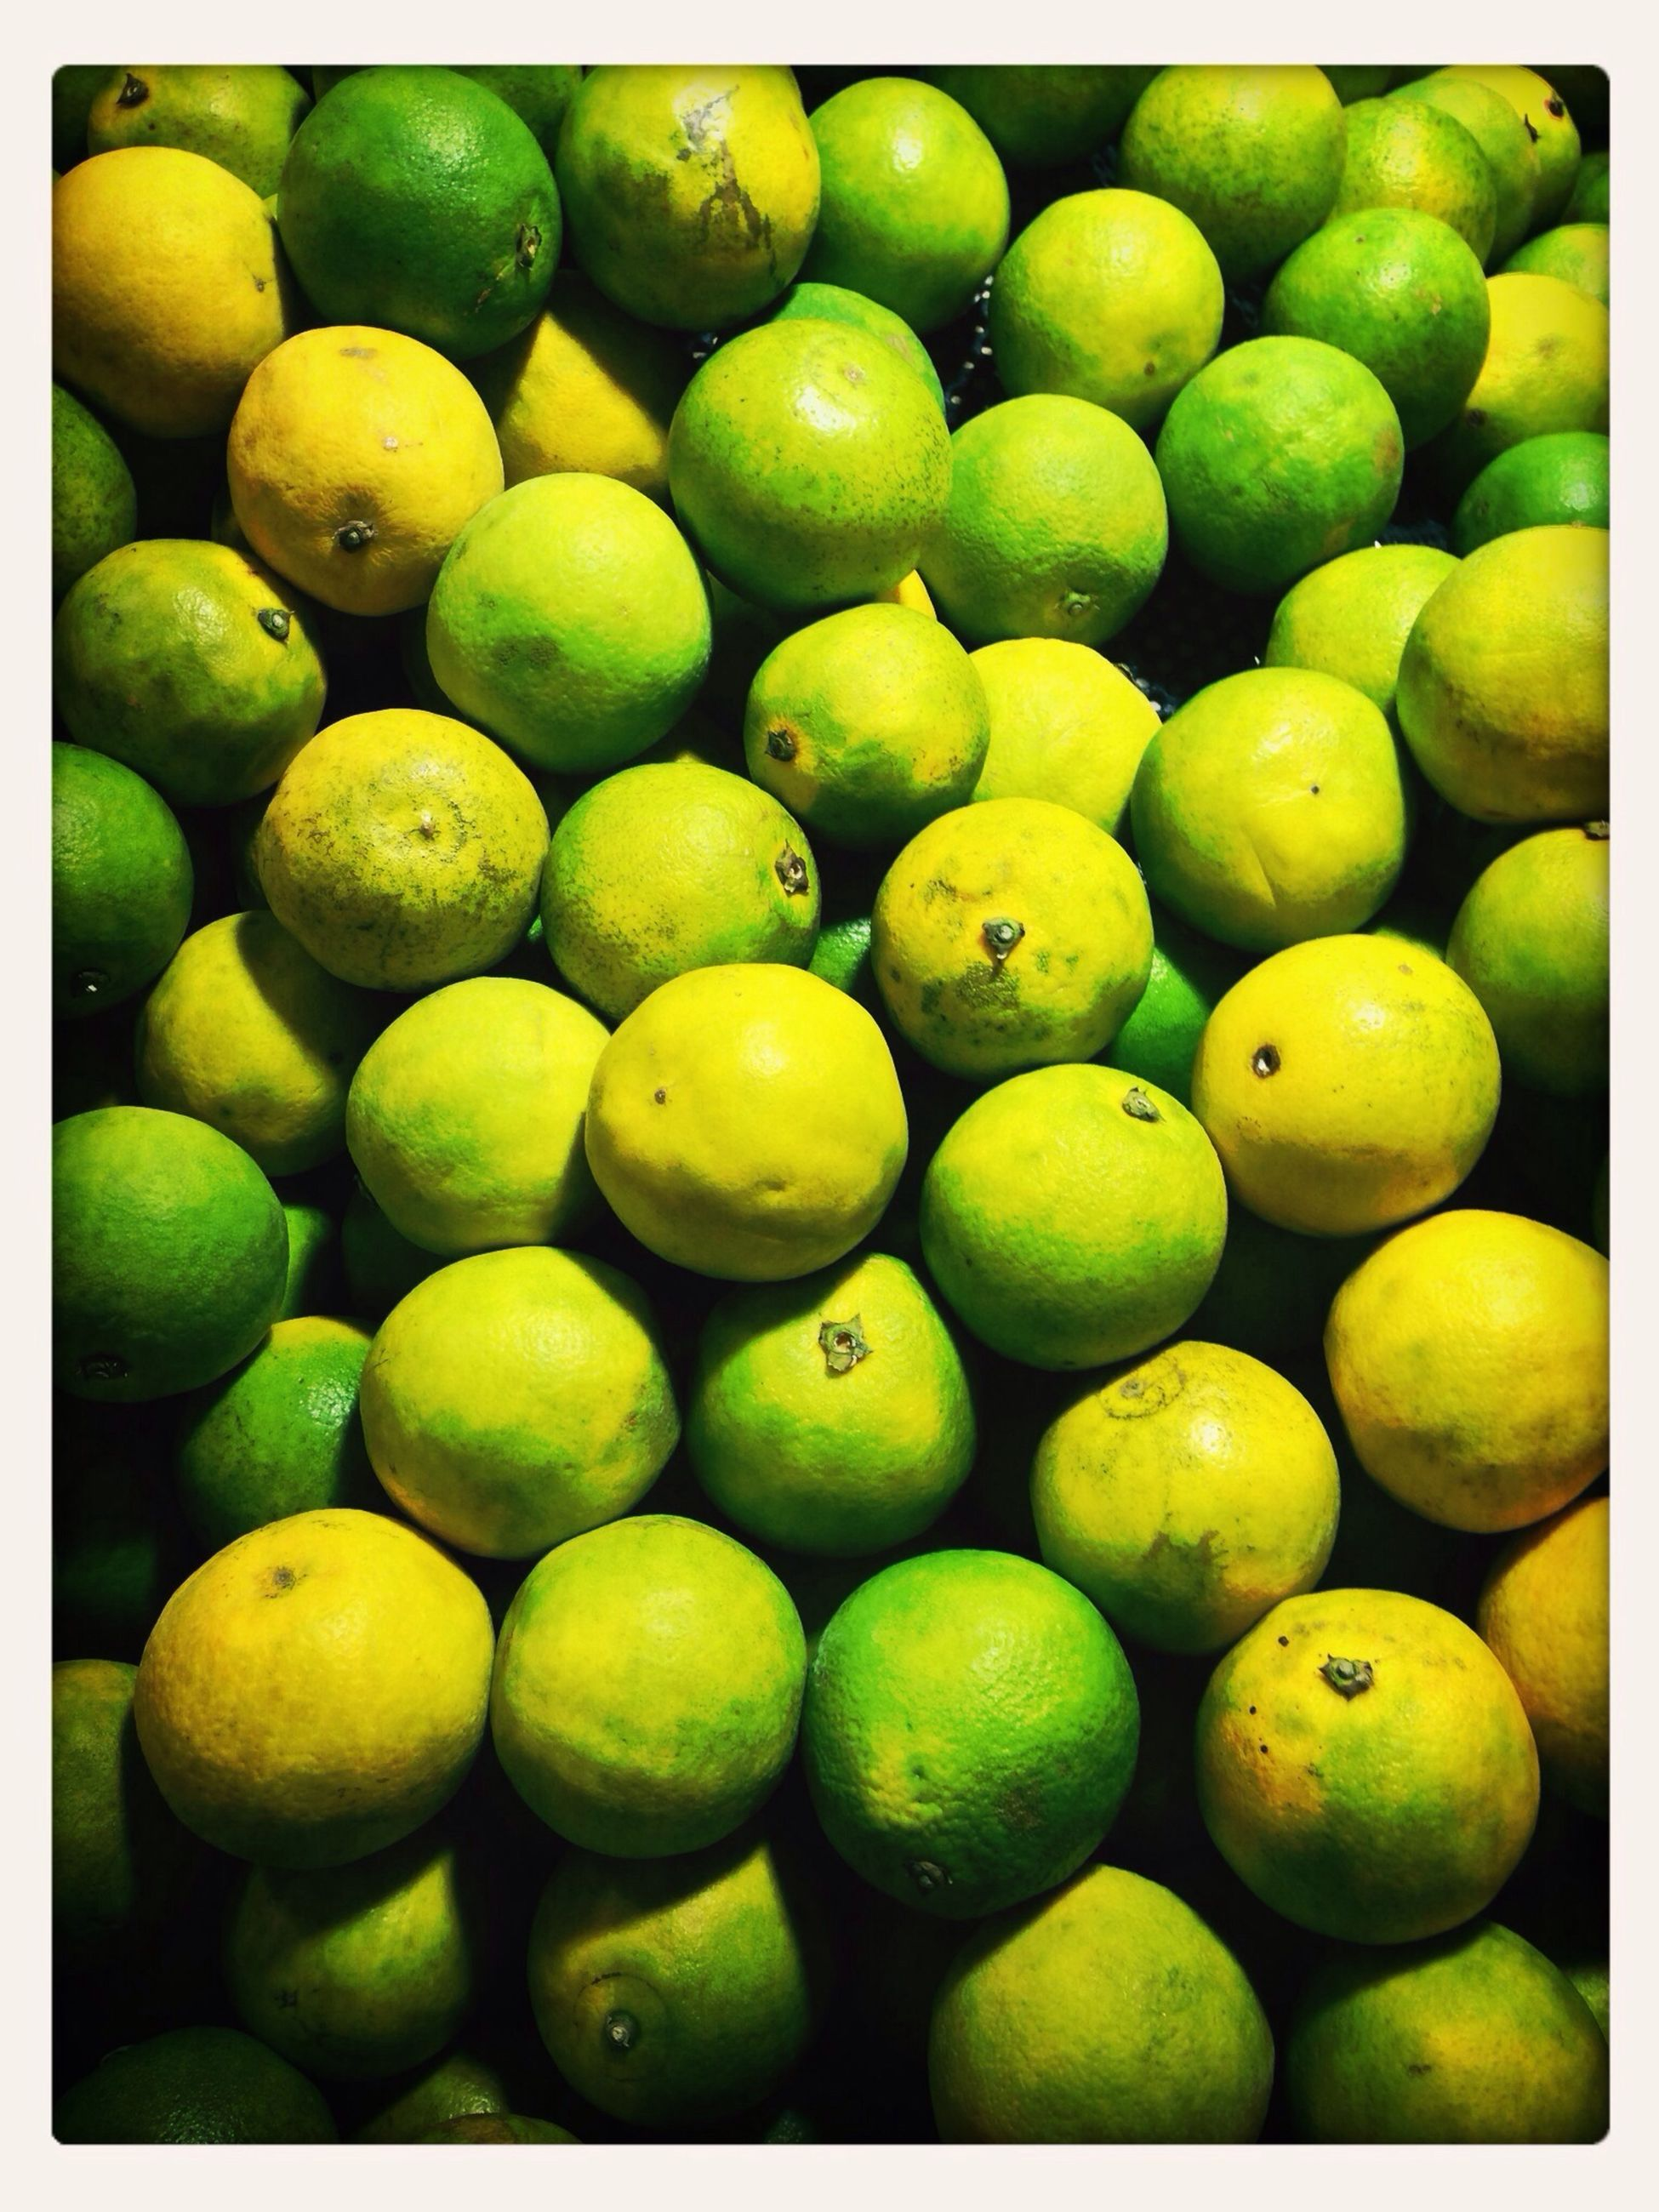 transfer print, food and drink, auto post production filter, fruit, food, healthy eating, freshness, abundance, large group of objects, green color, full frame, backgrounds, yellow, organic, close-up, ripe, lemon, citrus fruit, no people, apple